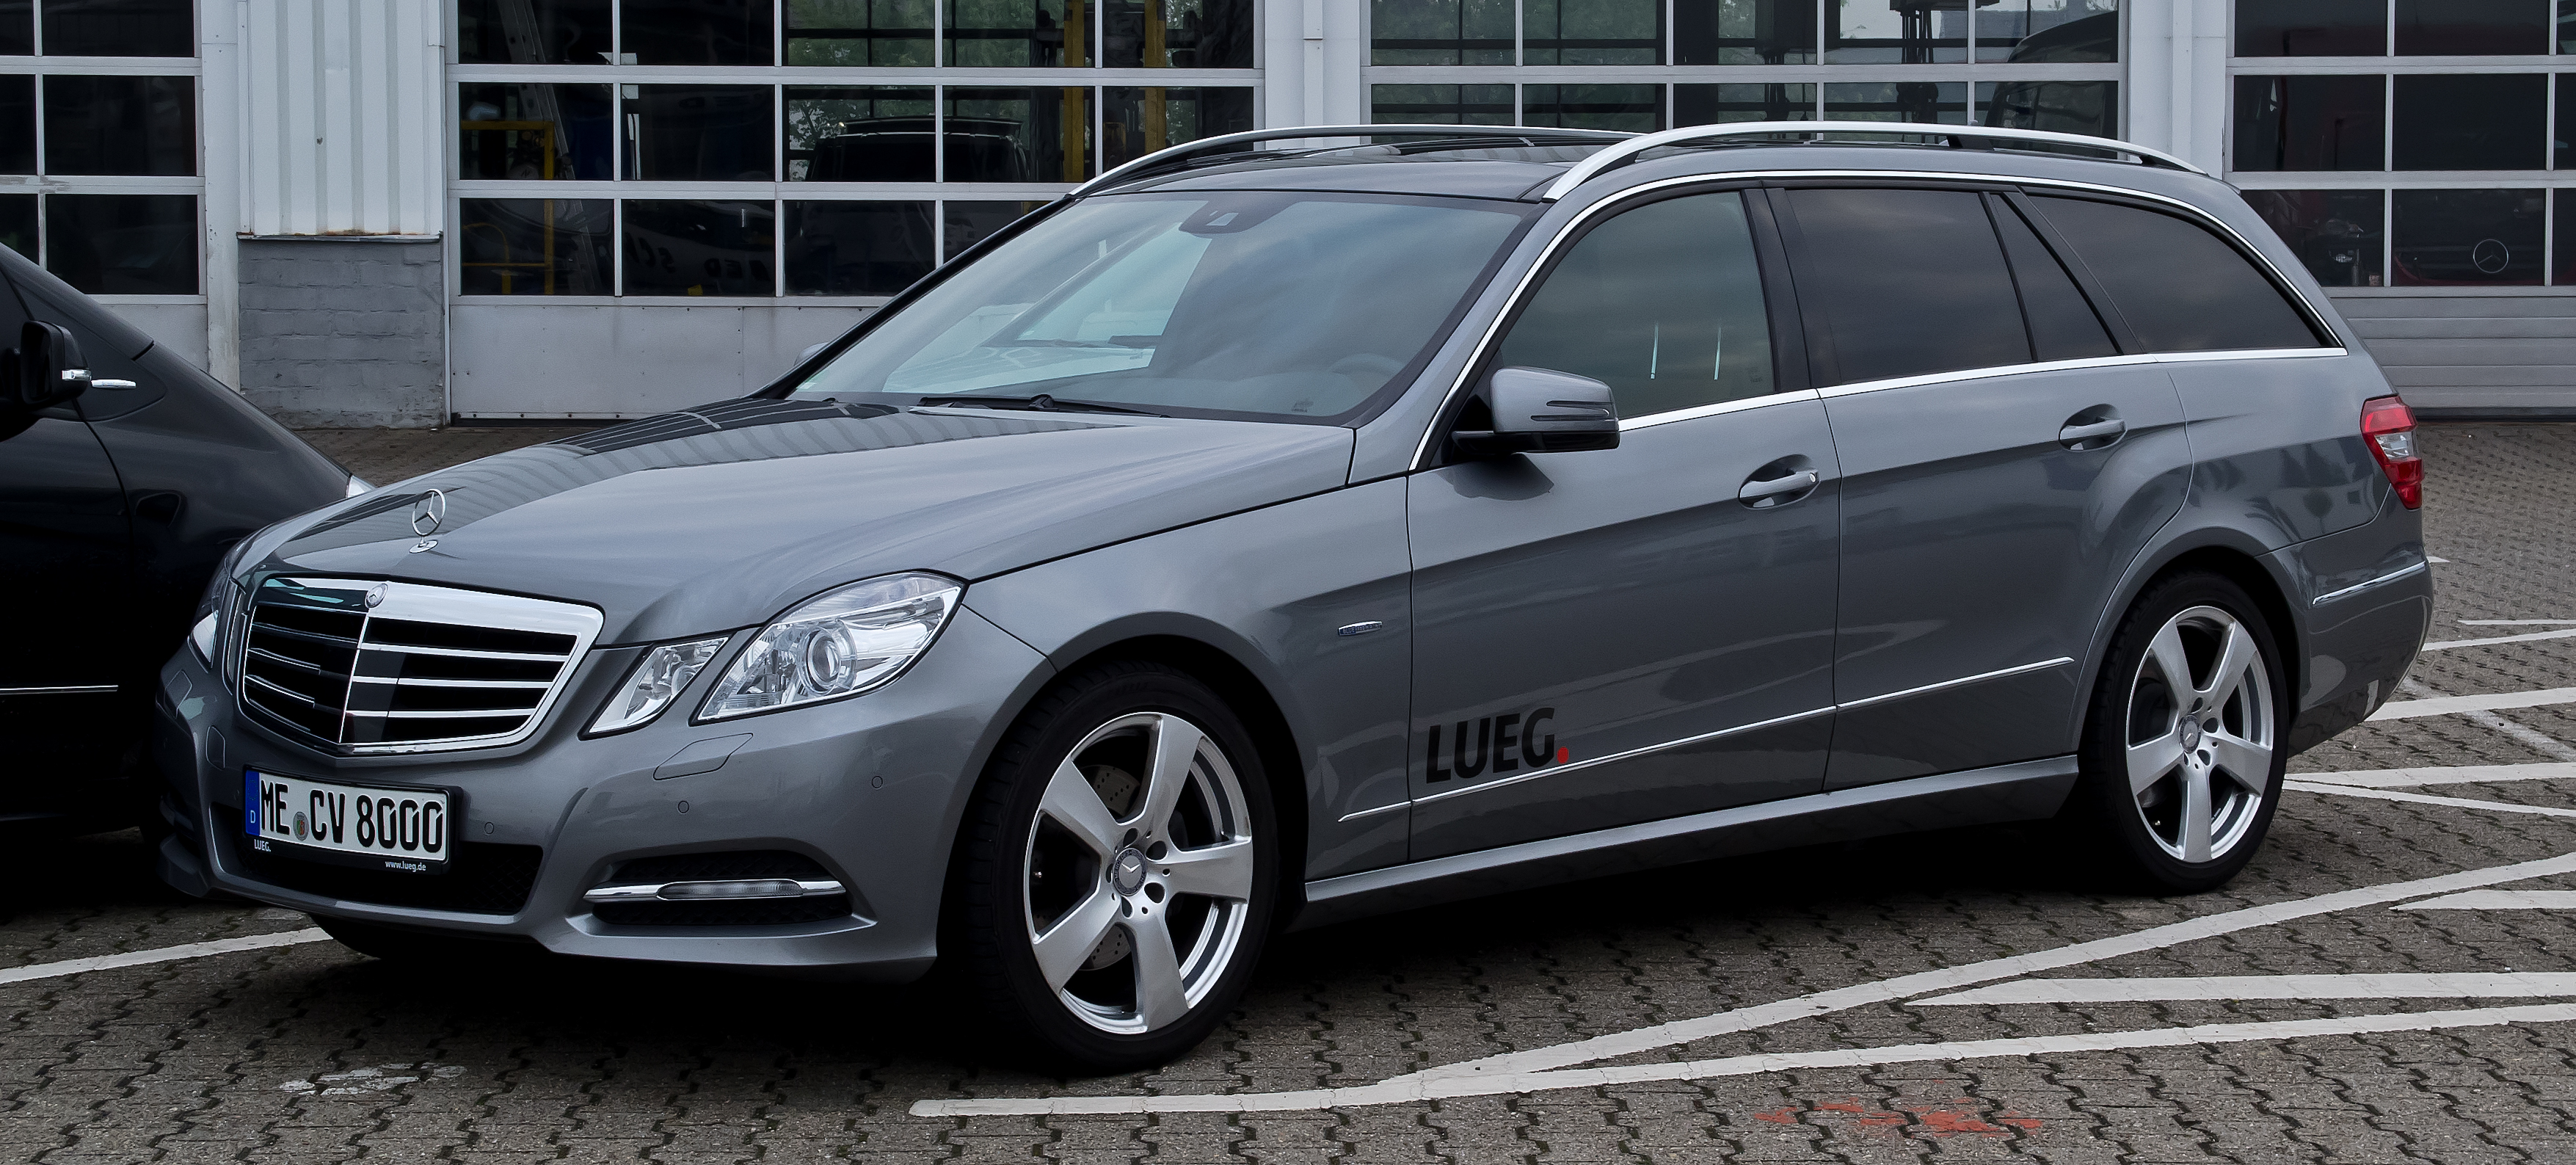 File:Mercedes-Benz E 250 CDI 4MATIC BlueEFFICIENCY T-Modell ...